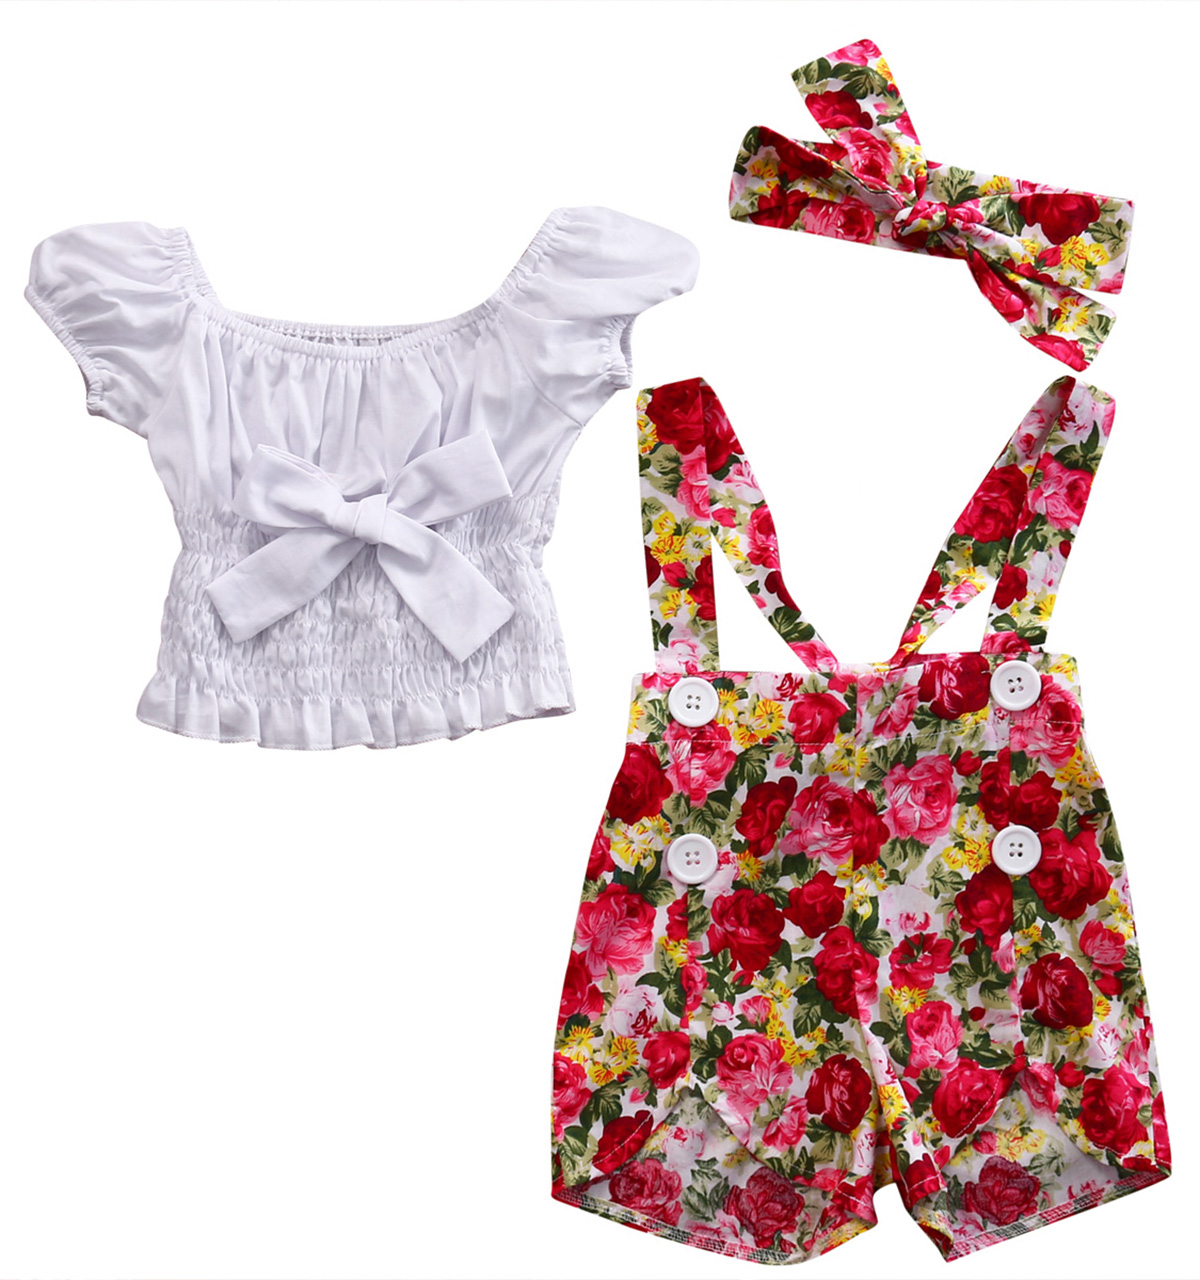 Sequins Tassel Shorts+Lace Bowknot Headband Outfits Mrs.BakerHome 3pc Baby Girl Print Romper